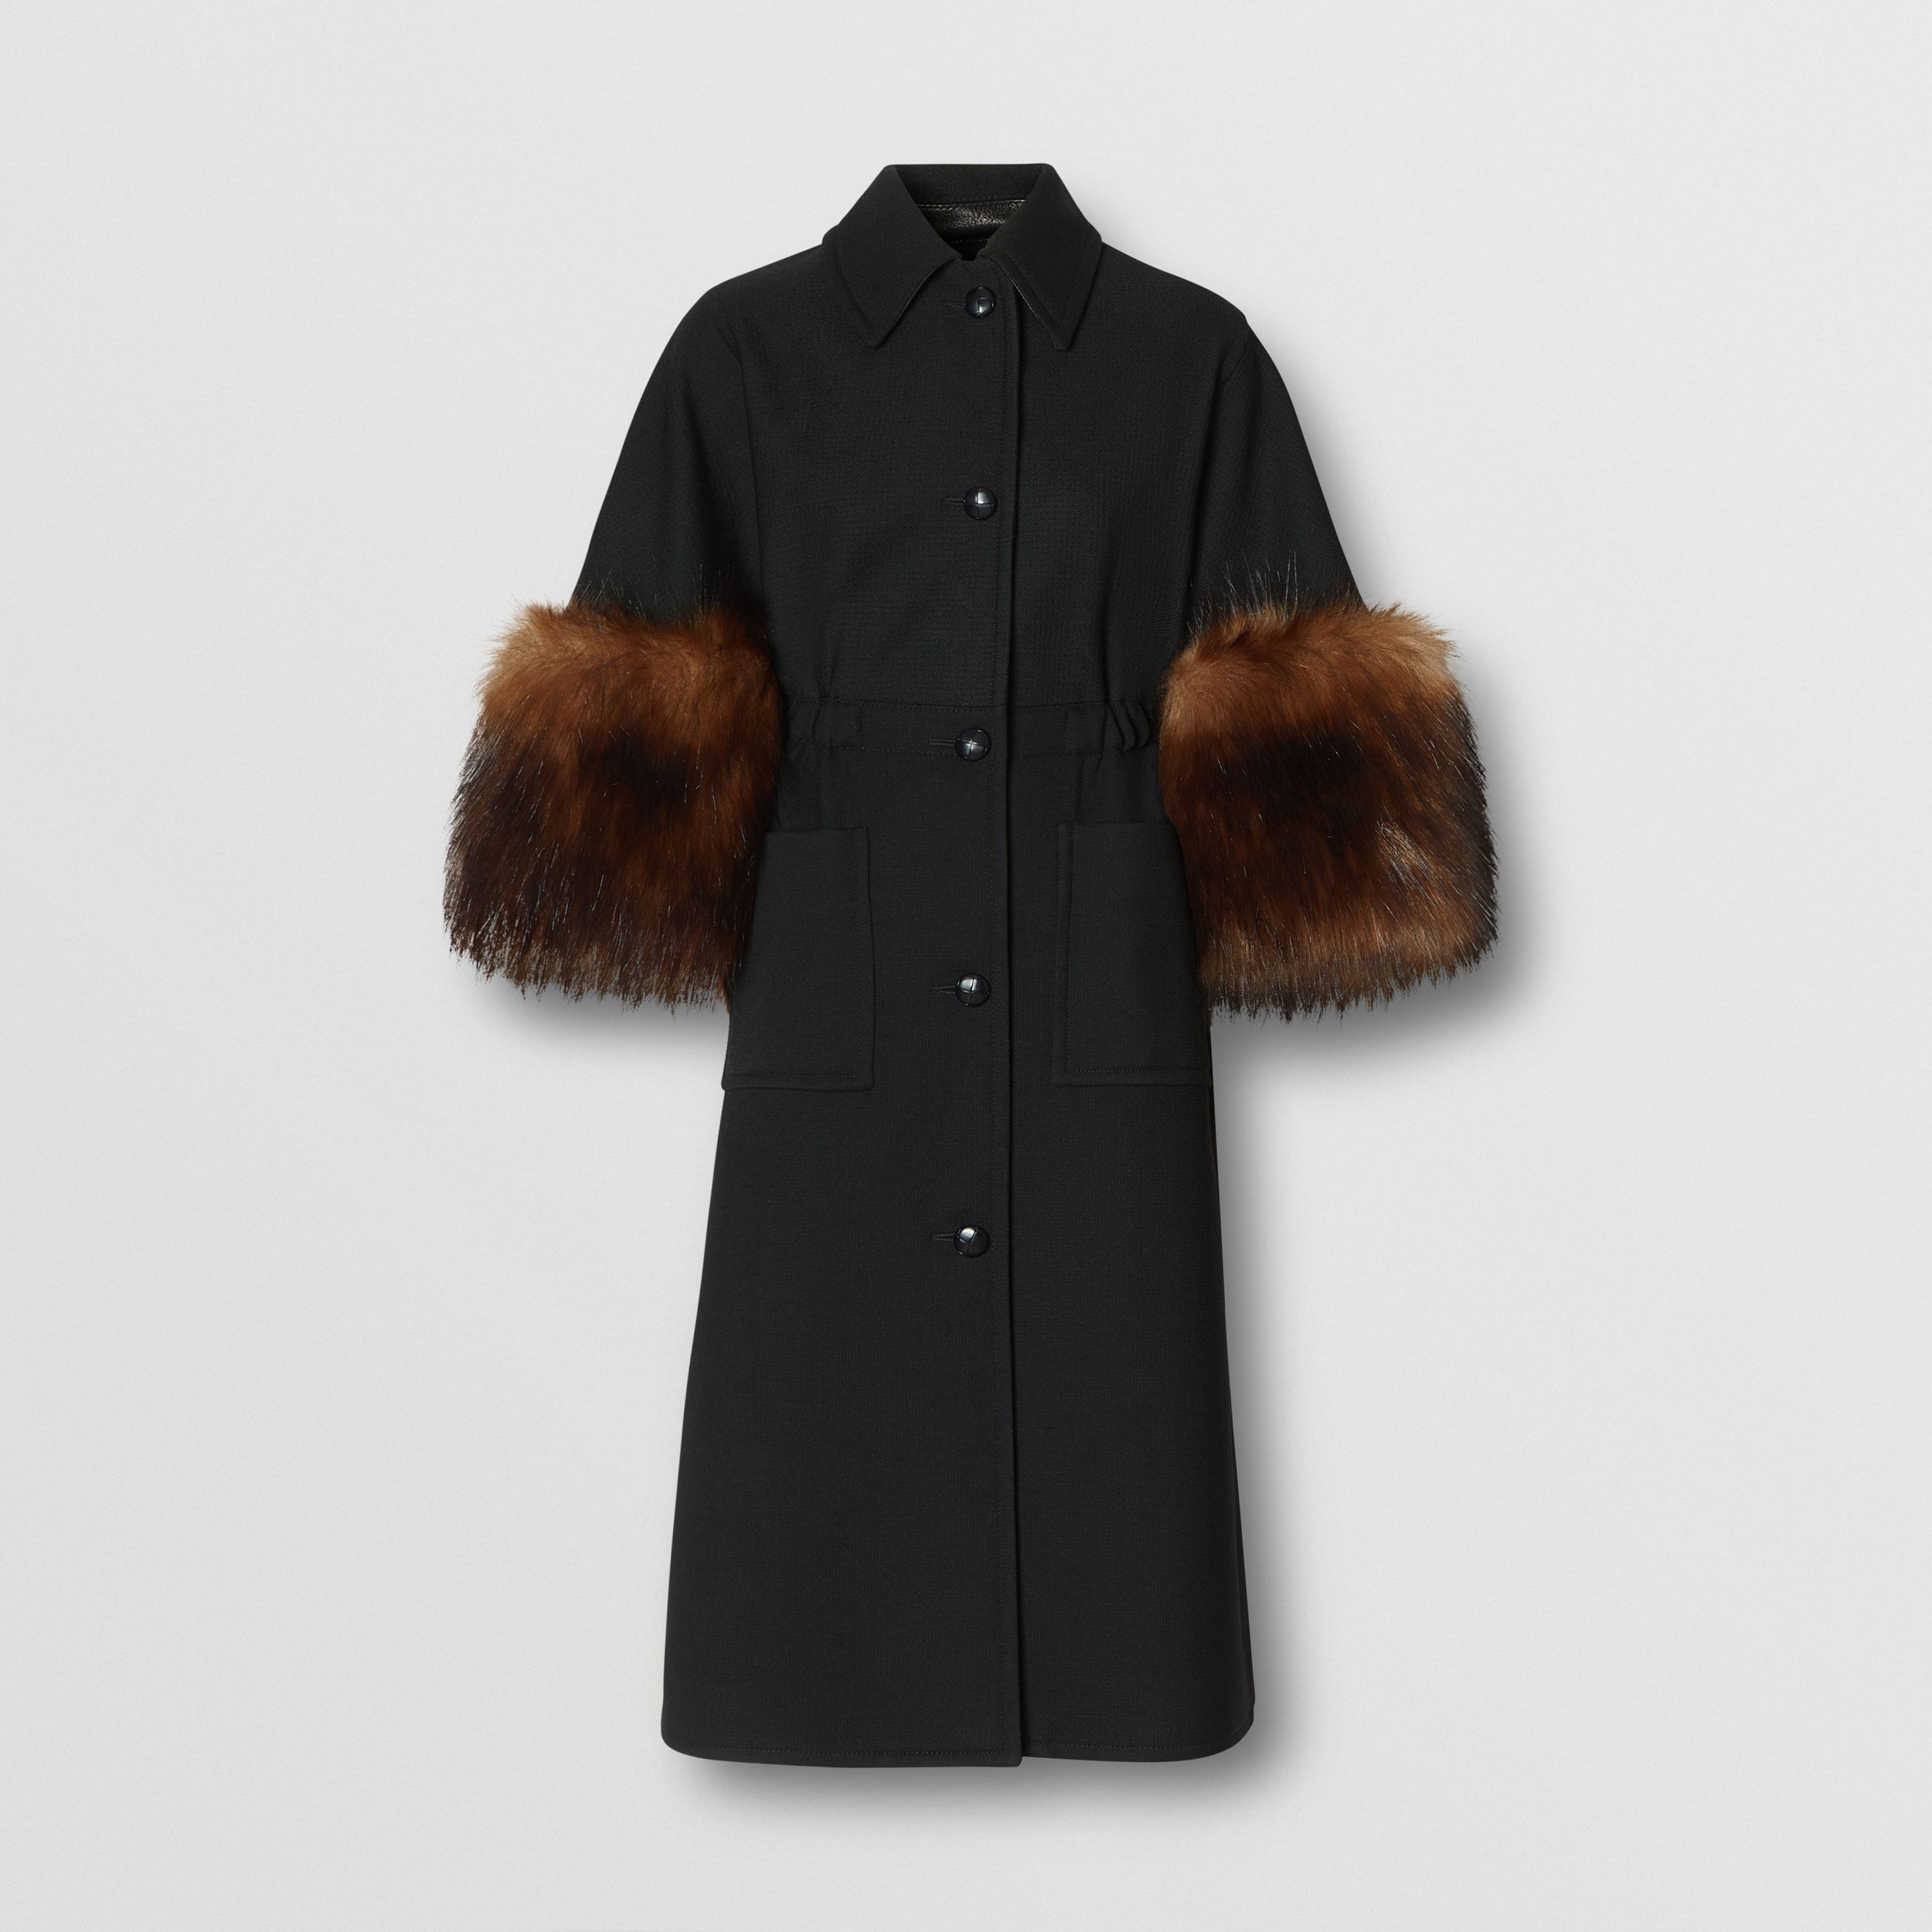 Faux Fur Trim Cape Detail Wool Blend Coat in Black - Women | Burberry United Kingdom - 4